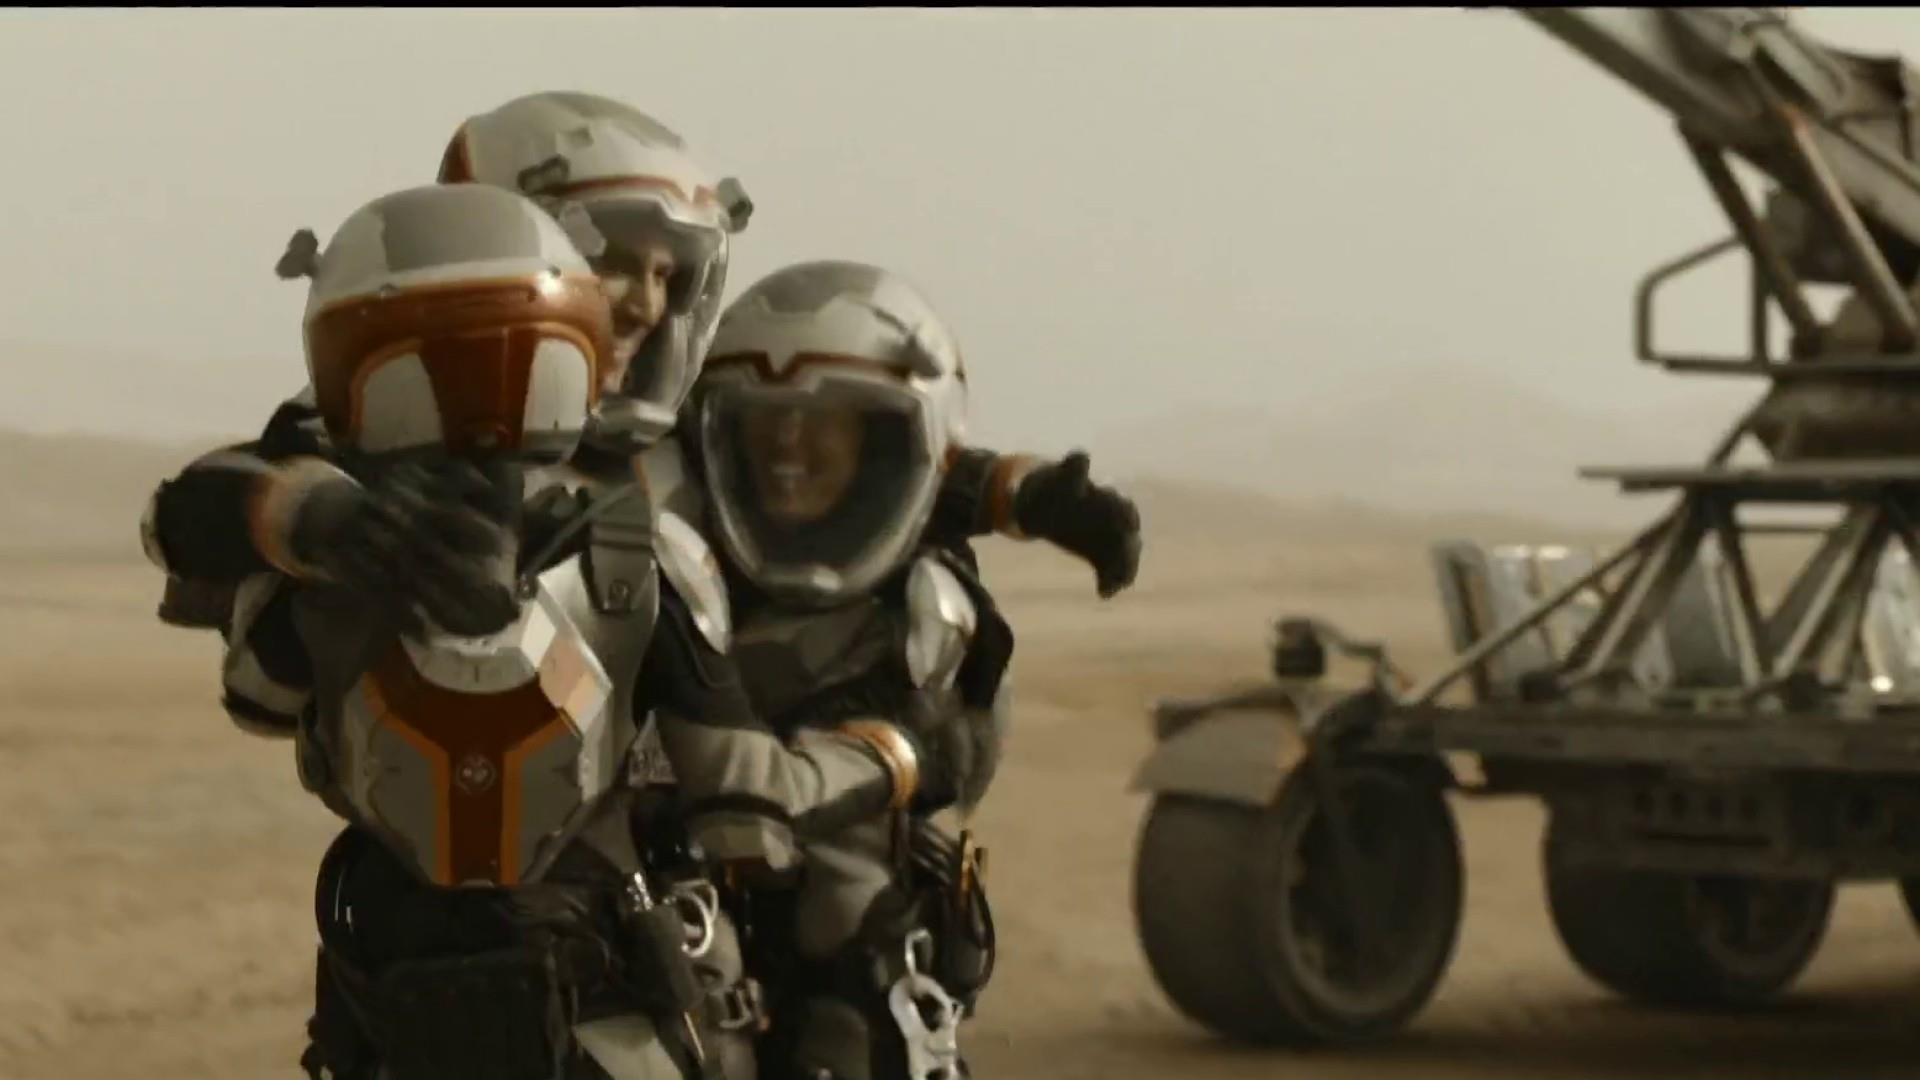 Ron Howard: Human drama takes shape in 'Mars'